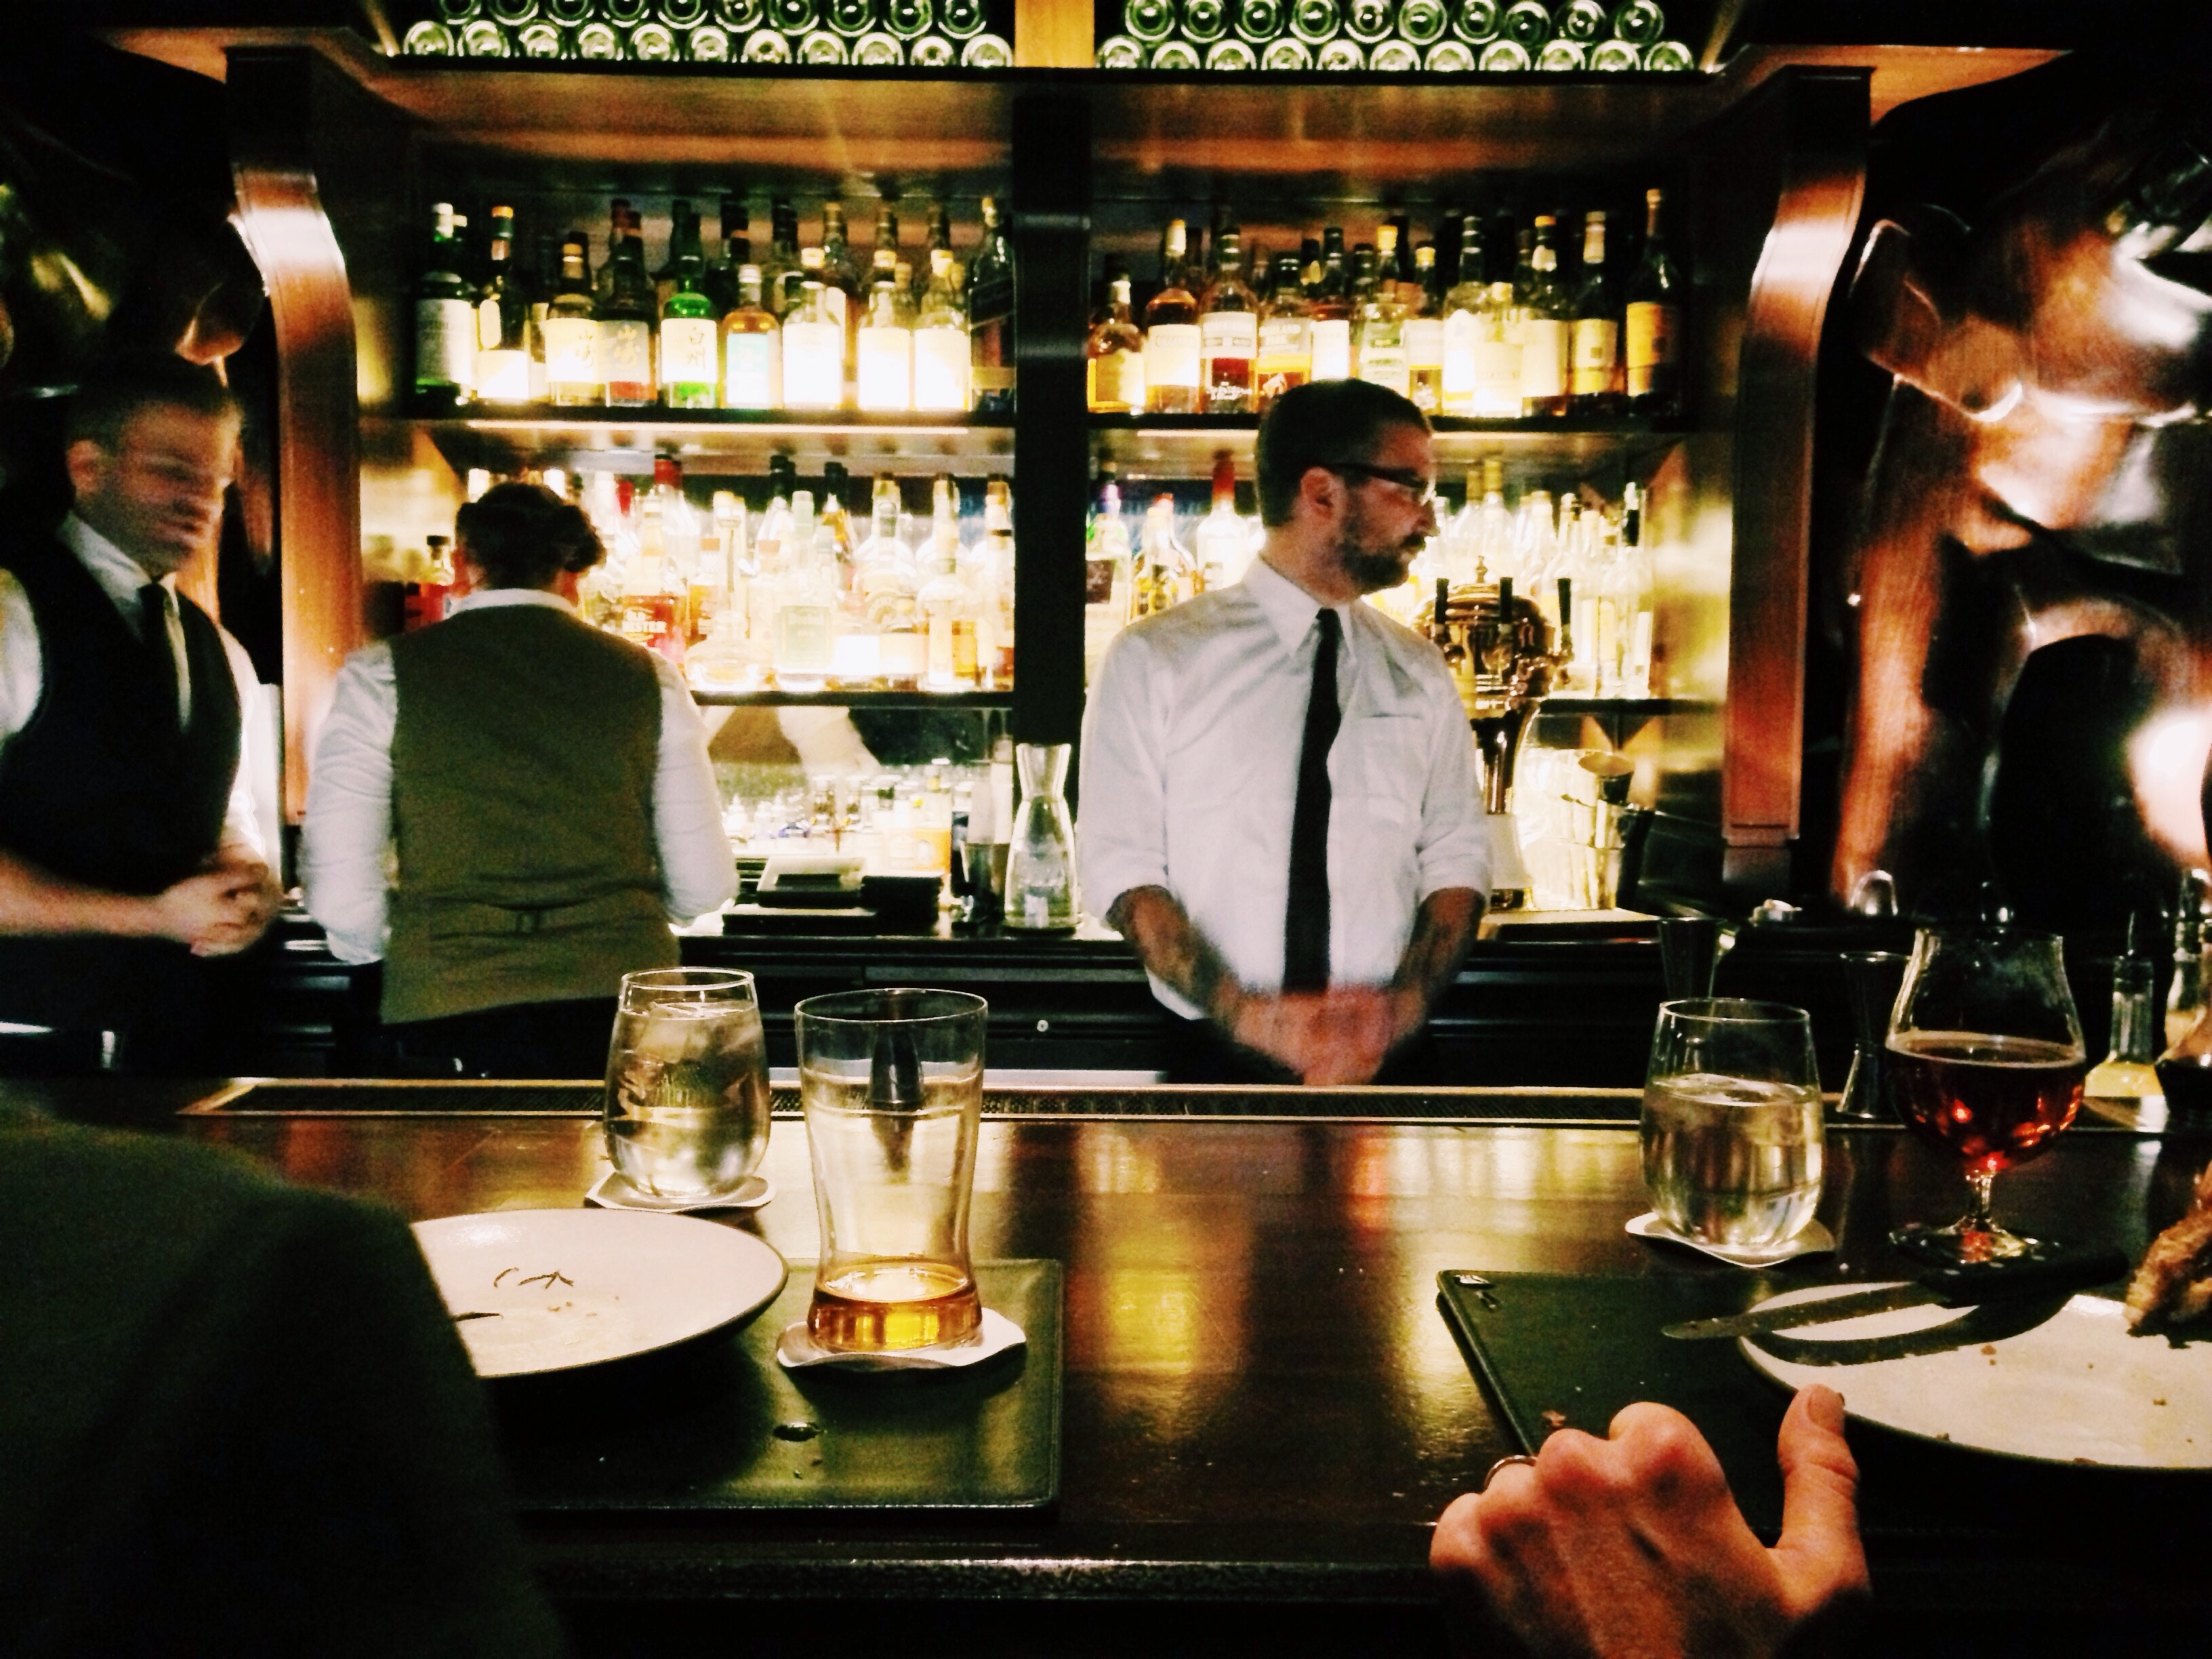 It is rush-hour, and your workplace is buzzing. You have to place drink orders at the bar, for the bartenders that have their hands full on the other side of the bar. How are you going to get your orders to the bartender?